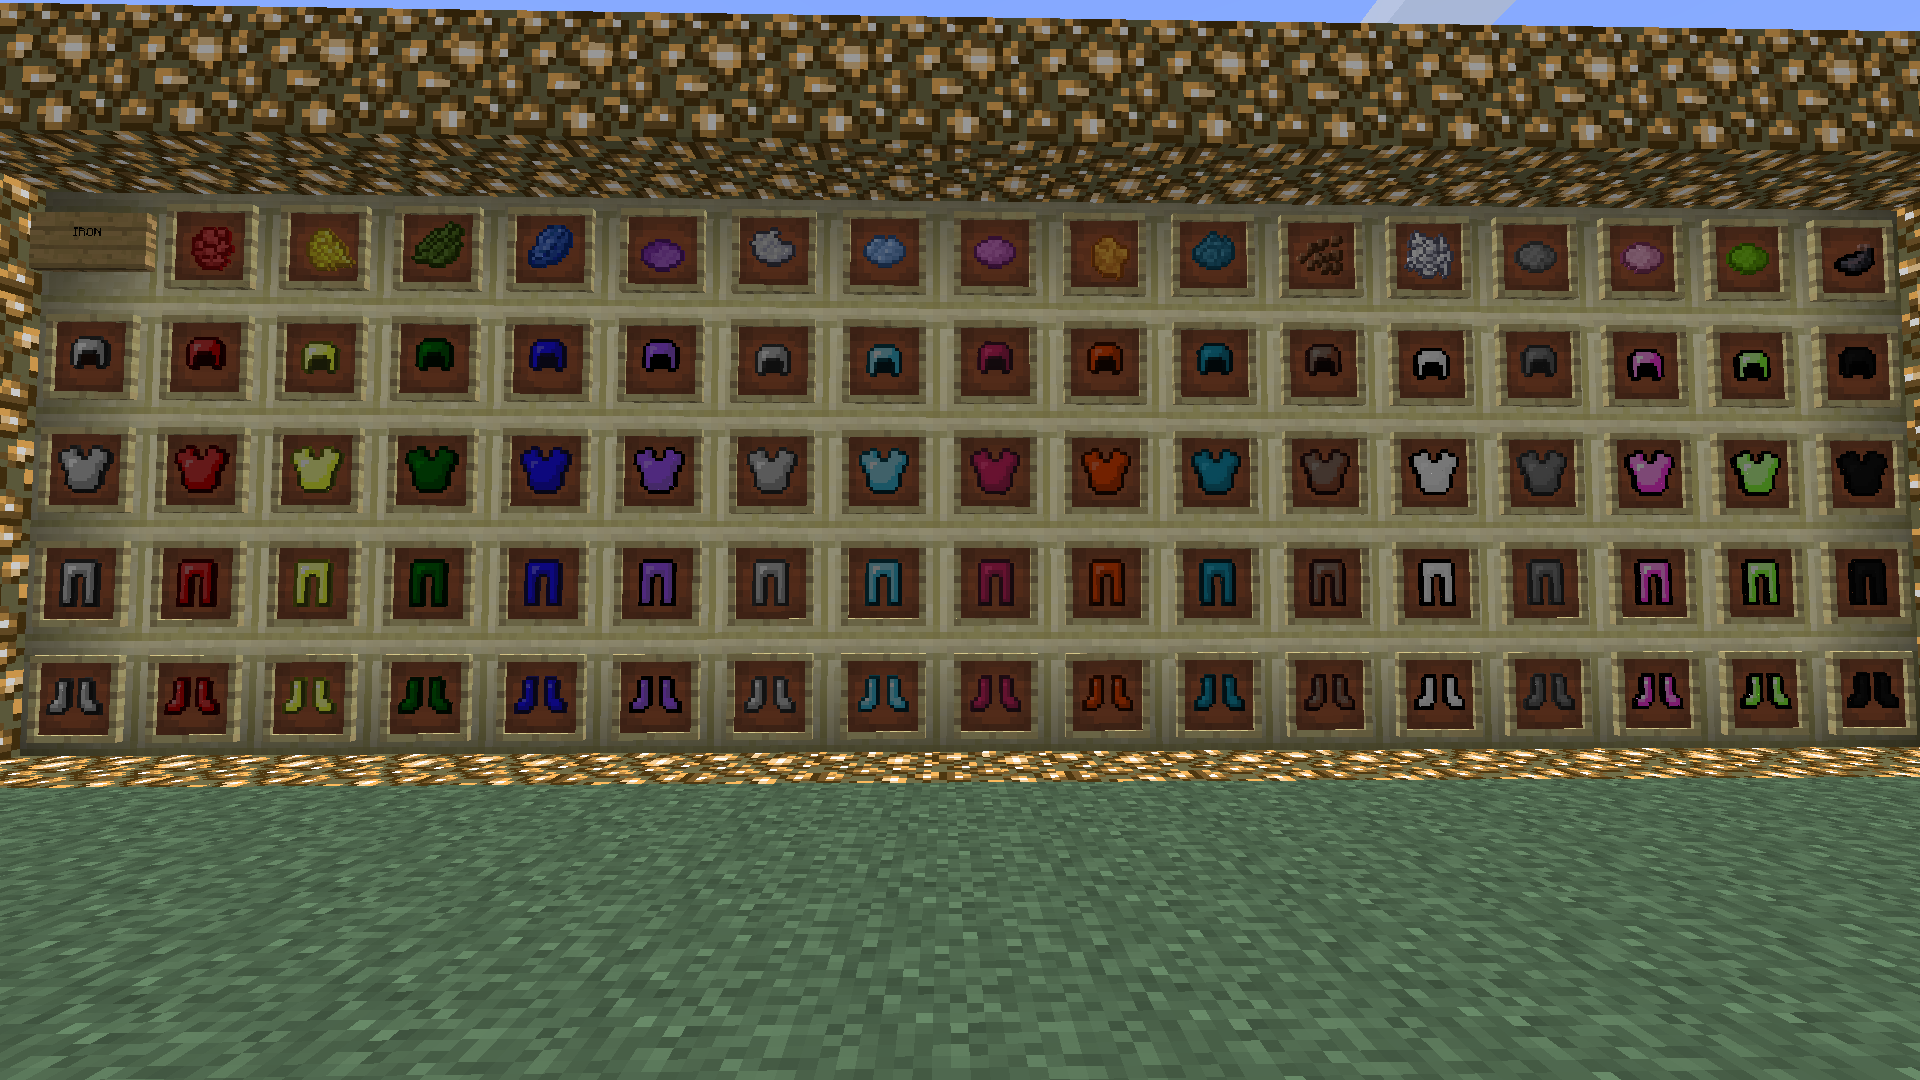 http://cdn.file-minecraft.com/Mods/Colorful-Armor-Mod-2.png